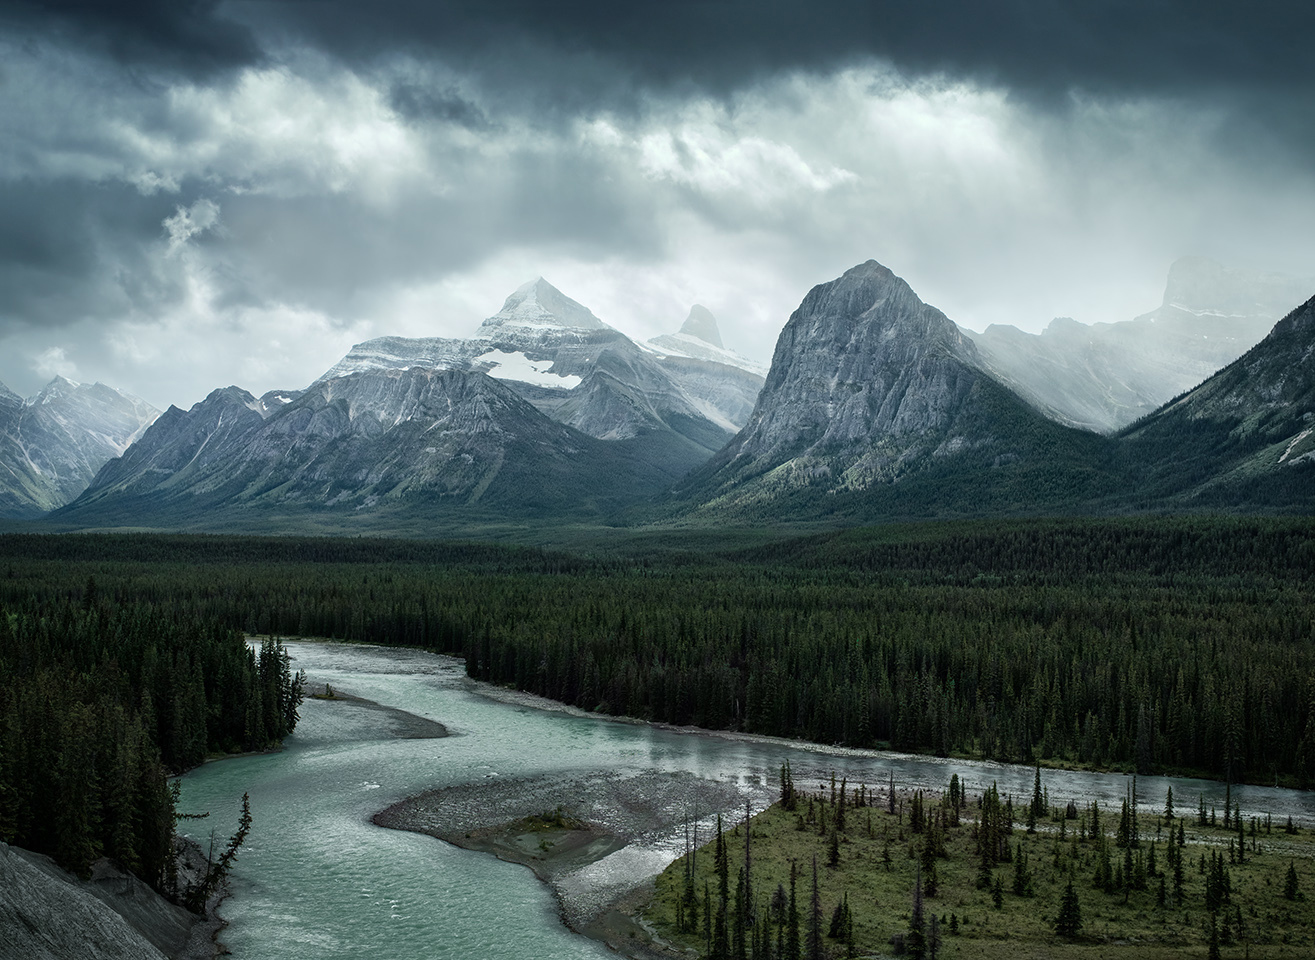 Approaching Storm, Athabasca River along the Canadian Rockies